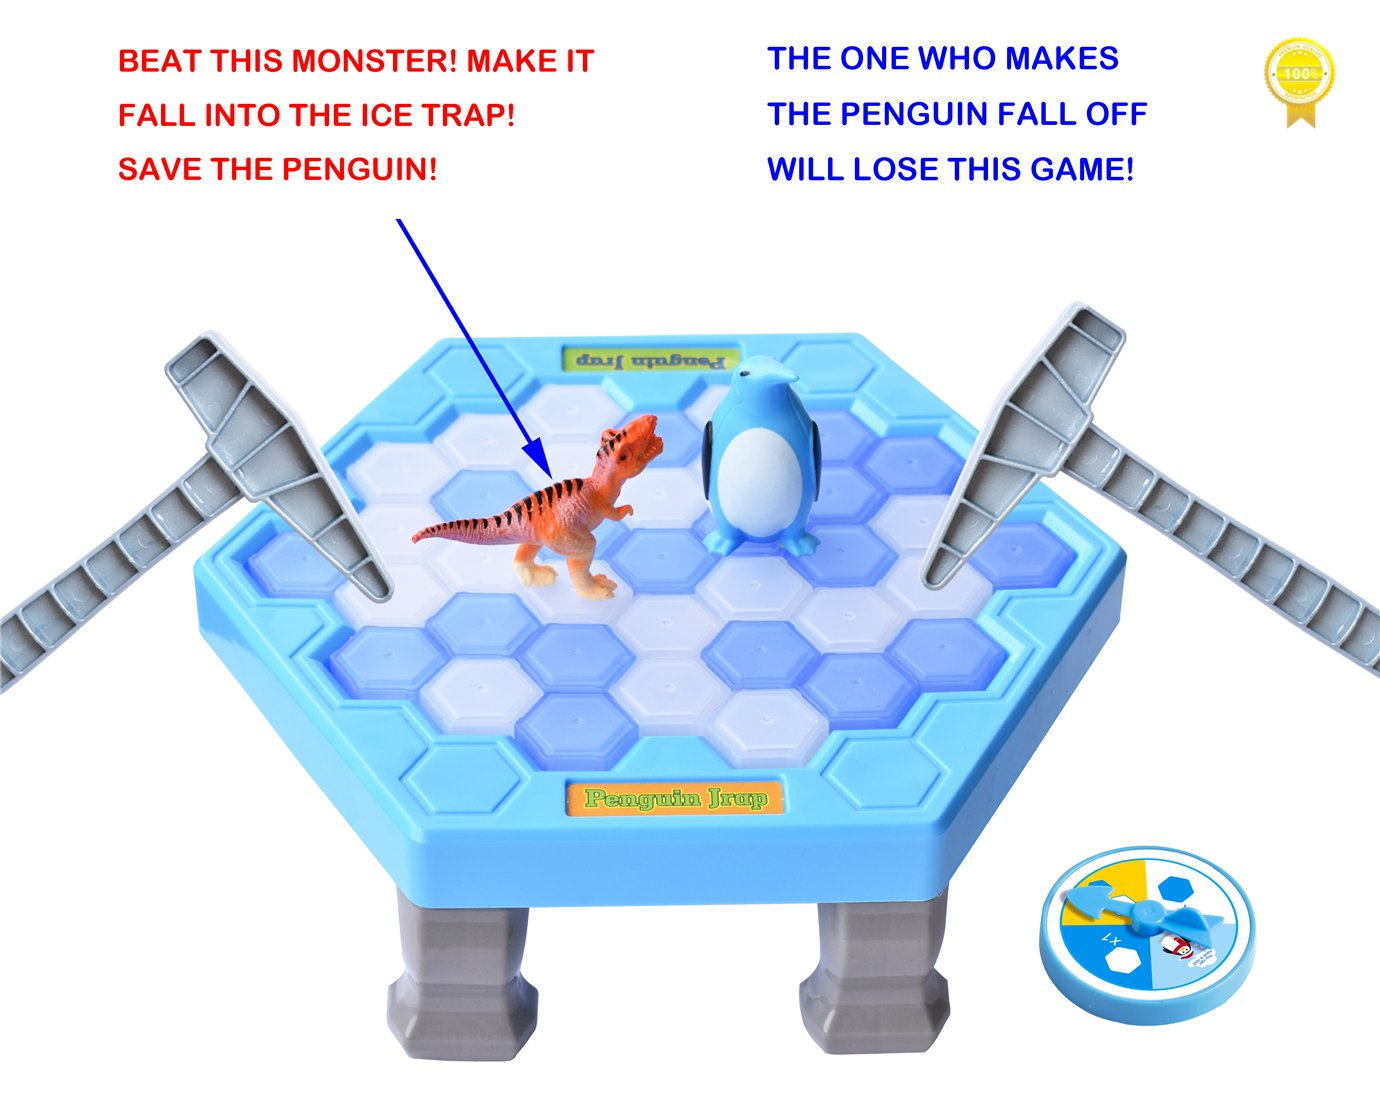 SPEAK FUN Penguin Trap Puzzle Table Games Balance Ice Cubes Icebreaking Games Save the Penguin Interactive Family Game by SPEAK FUN (Image #2)